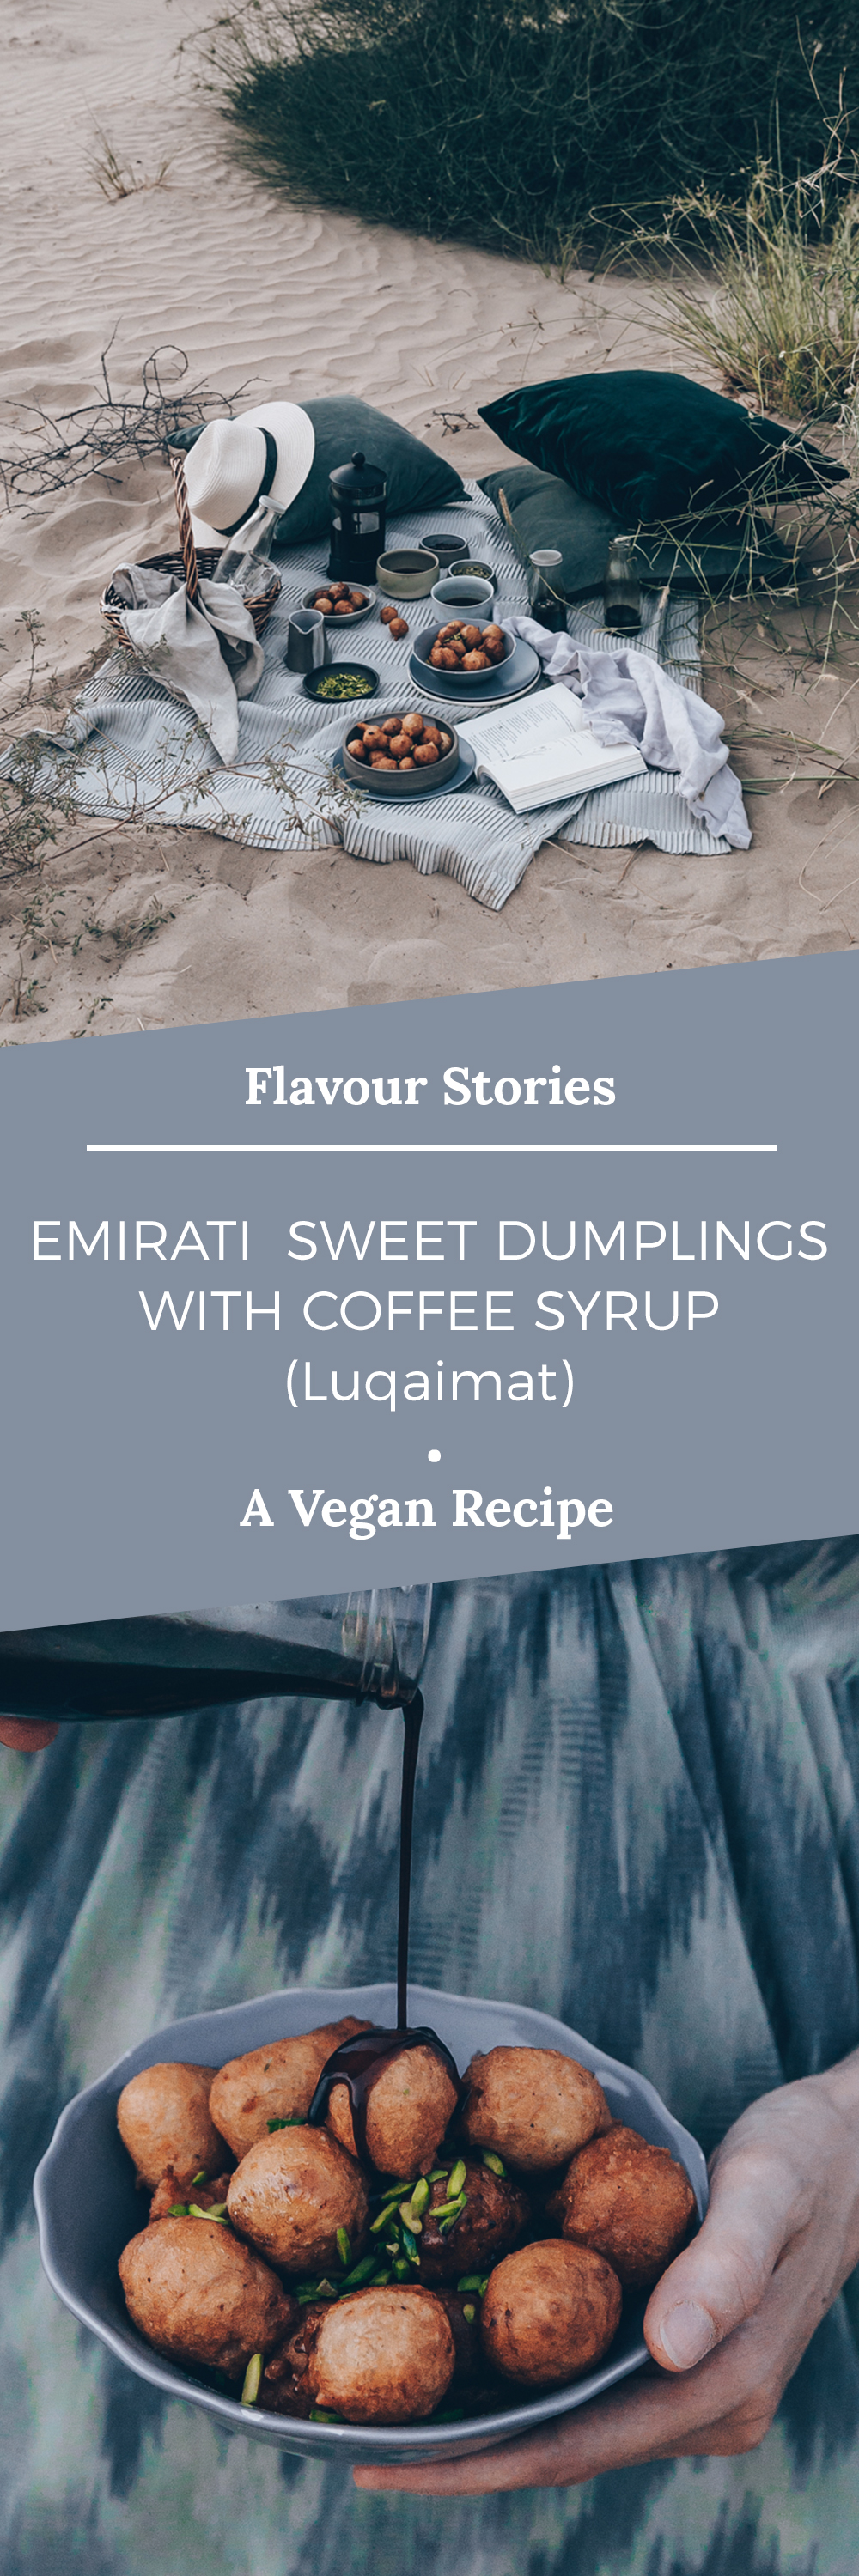 Emirati Sweet Dumplings With Coffee Syrup (Luqaimat) - A Vegan Recipe by Kati of black.white.vivid. / #VirtualCoffeeParty2018 food styling, desert photography, food photography, plant-based recipe, Lower Gulf cuisine, UAE recipe, Vegan Arab recipe, Vegan Arabic recipe, picnic photography